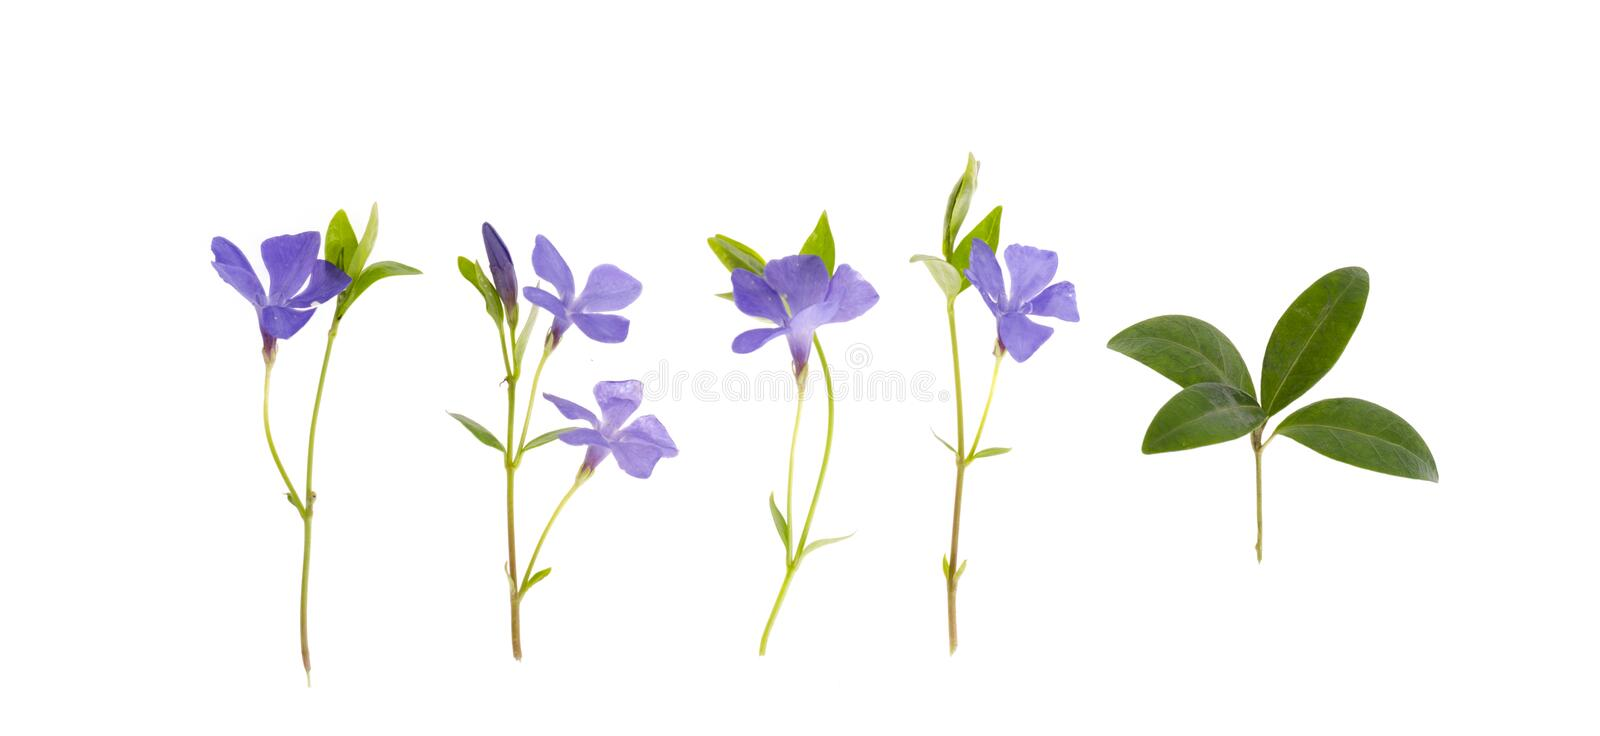 Blue flowers and leaves of vinca isolated on white background. Studio Photo stock image